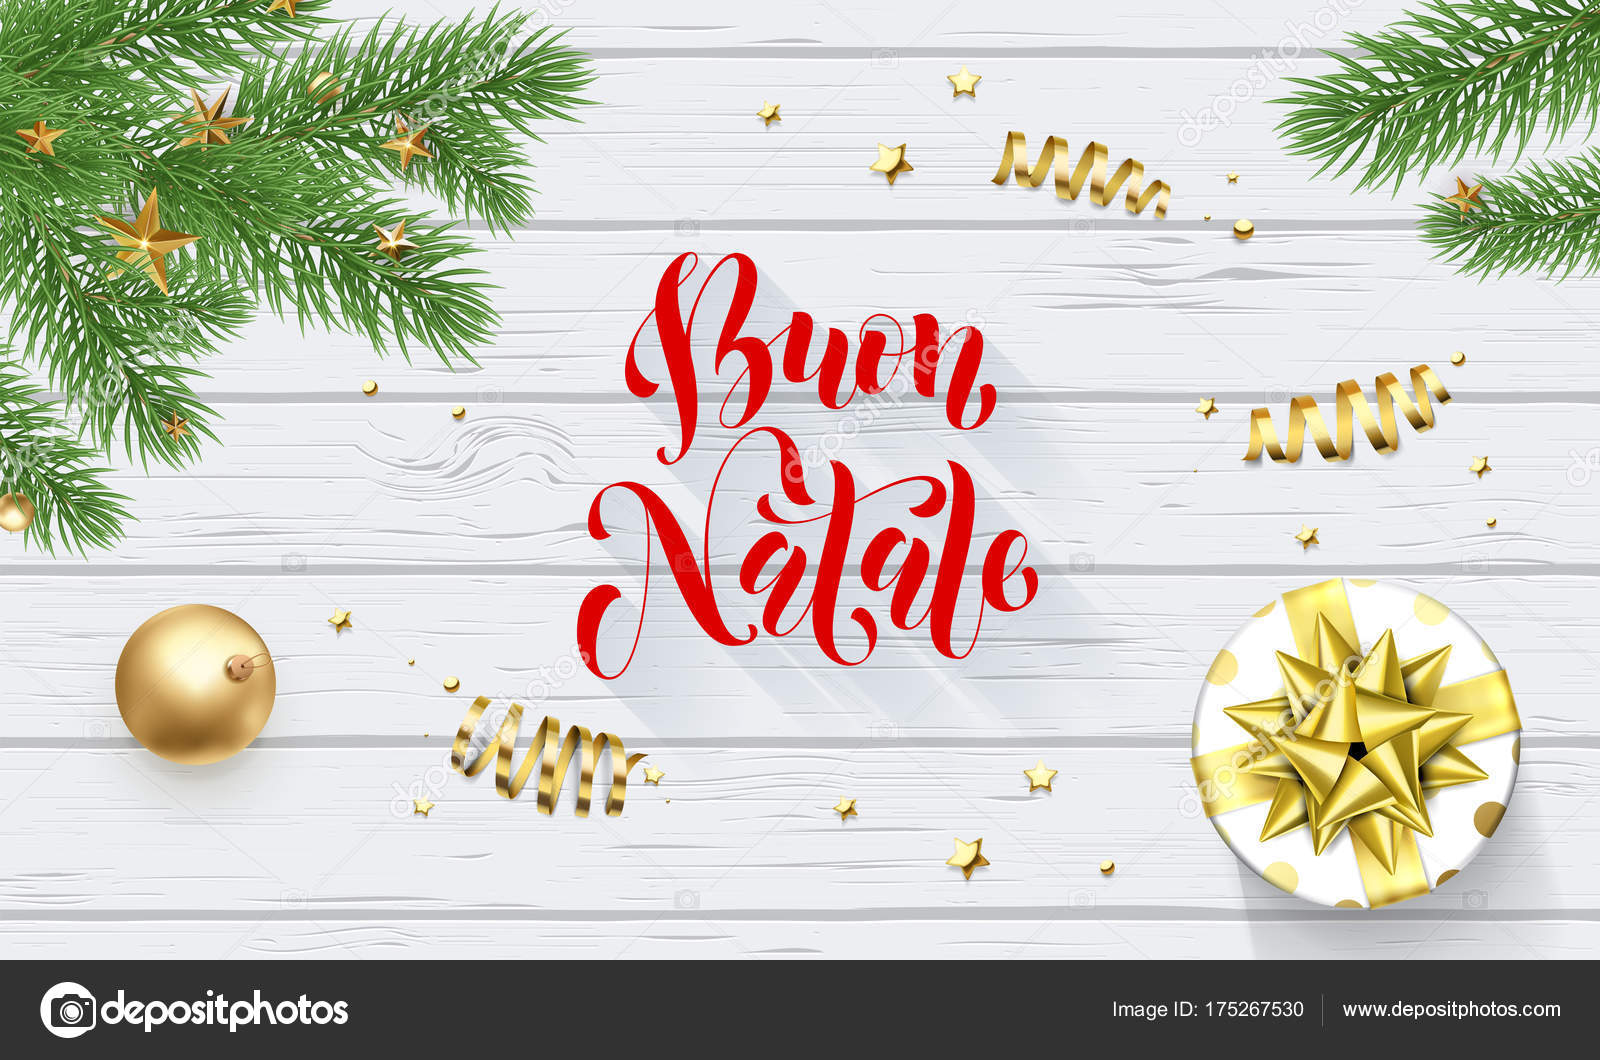 Merry Christmas In Italian.Buon Natale Italian Merry Christmas Holiday Golden